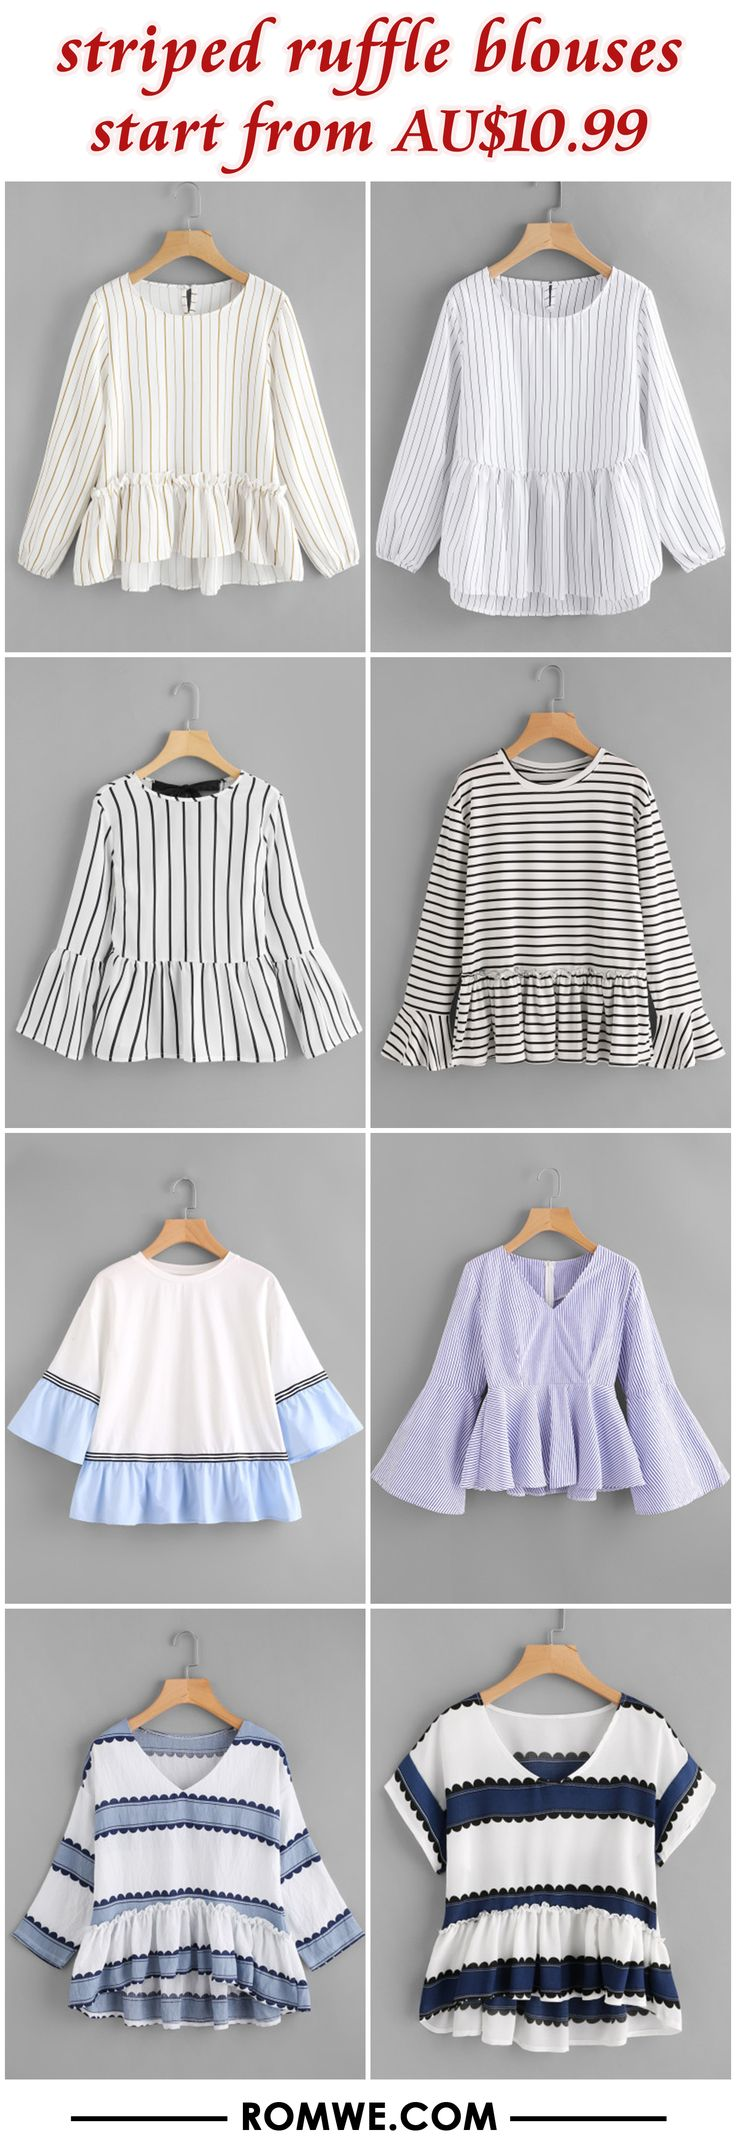 striped ruffle blouses from AU$10.99